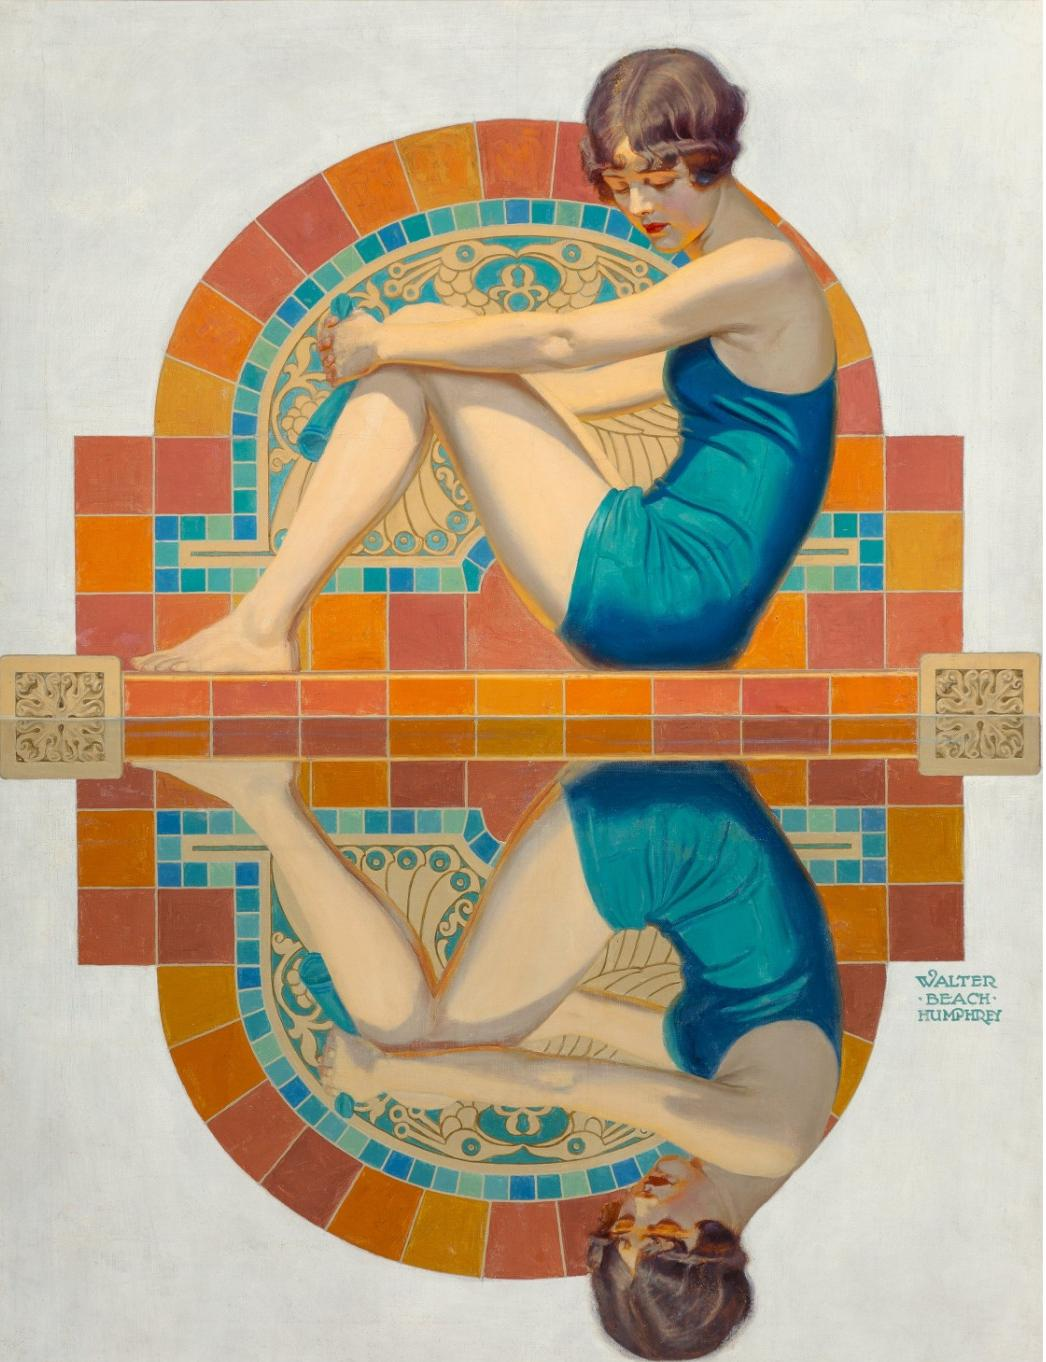 Walter Beach Humphrey Reflection, Collier's magazine cover, June 15, 1929